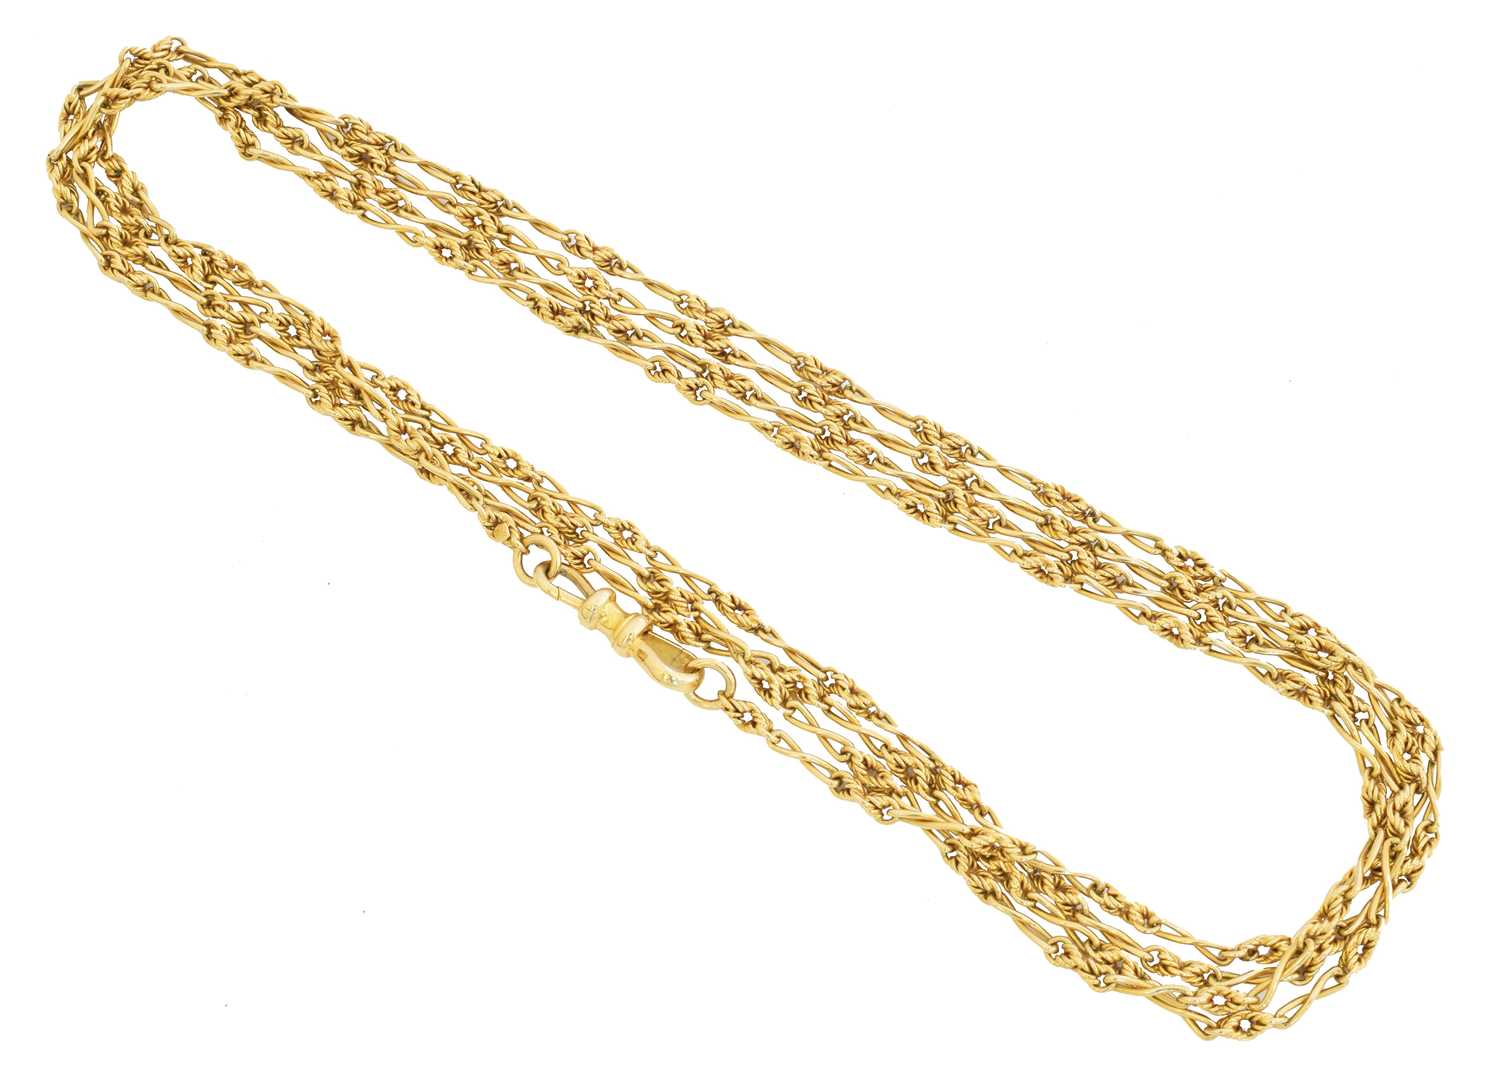 Lot An early 20th century 18ct gold Longuard chain